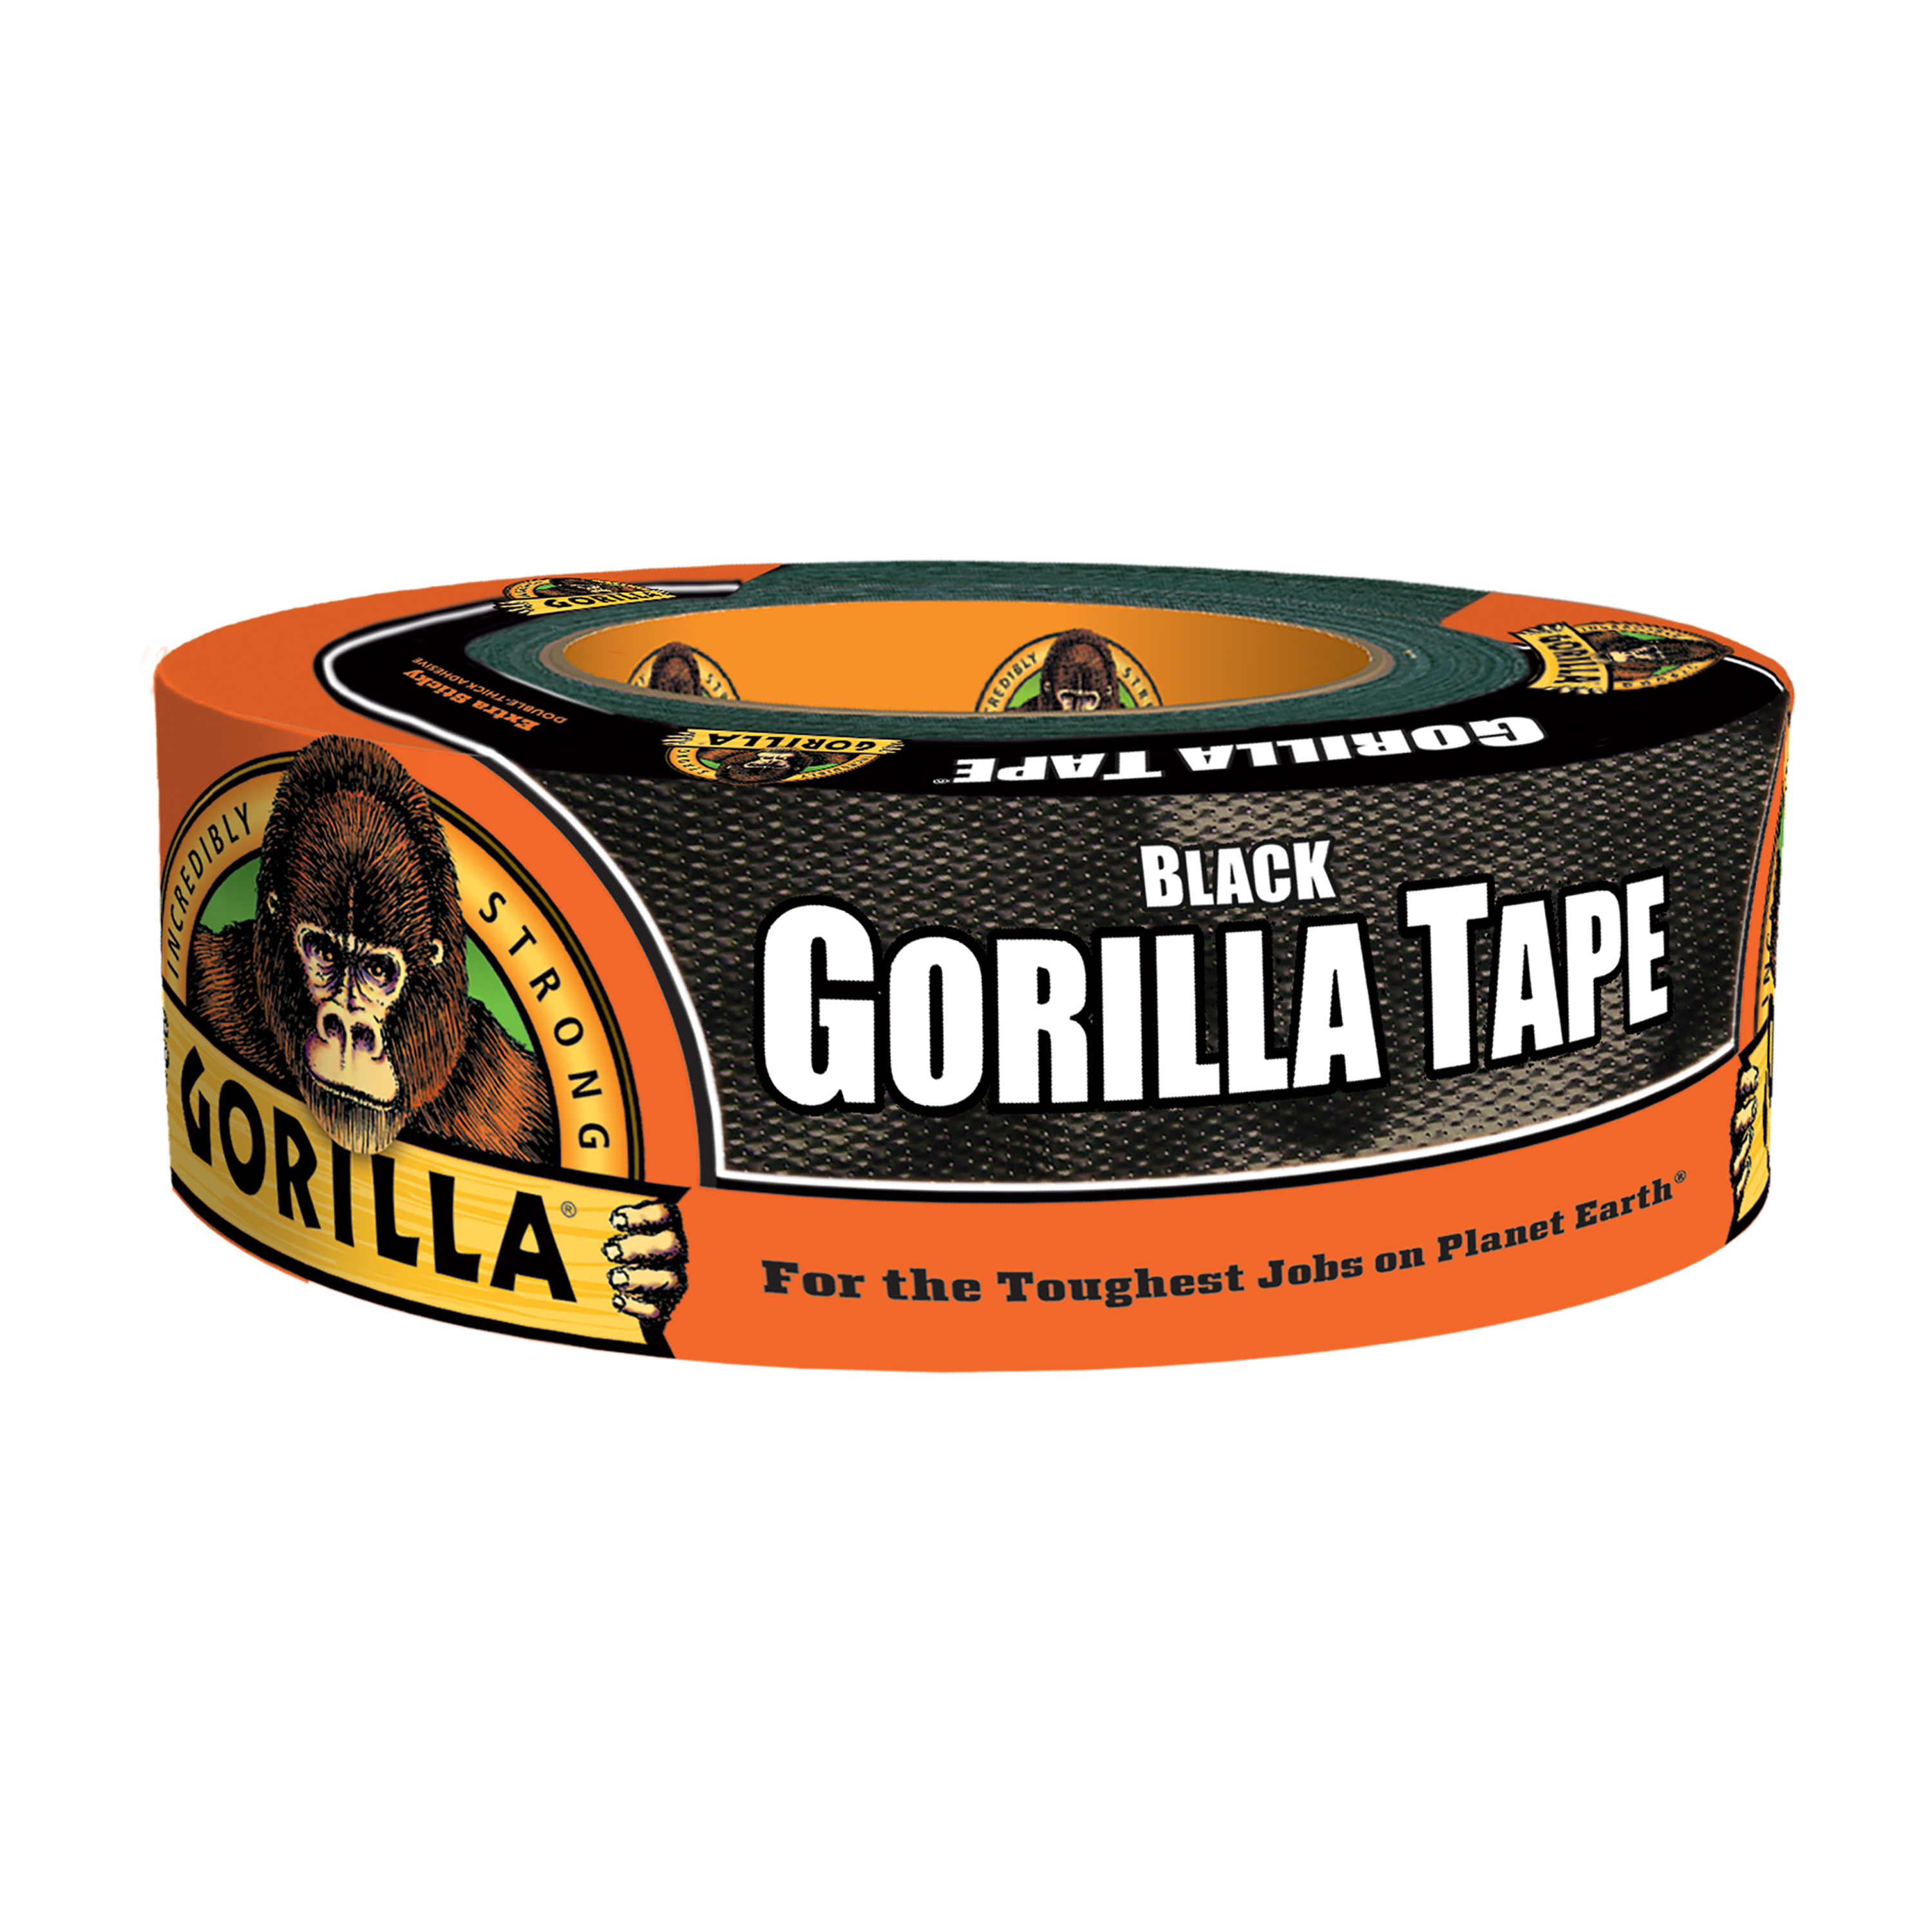 Firestop Drywall Amp Adhesives Duct Tape Gorilla Duct Tape